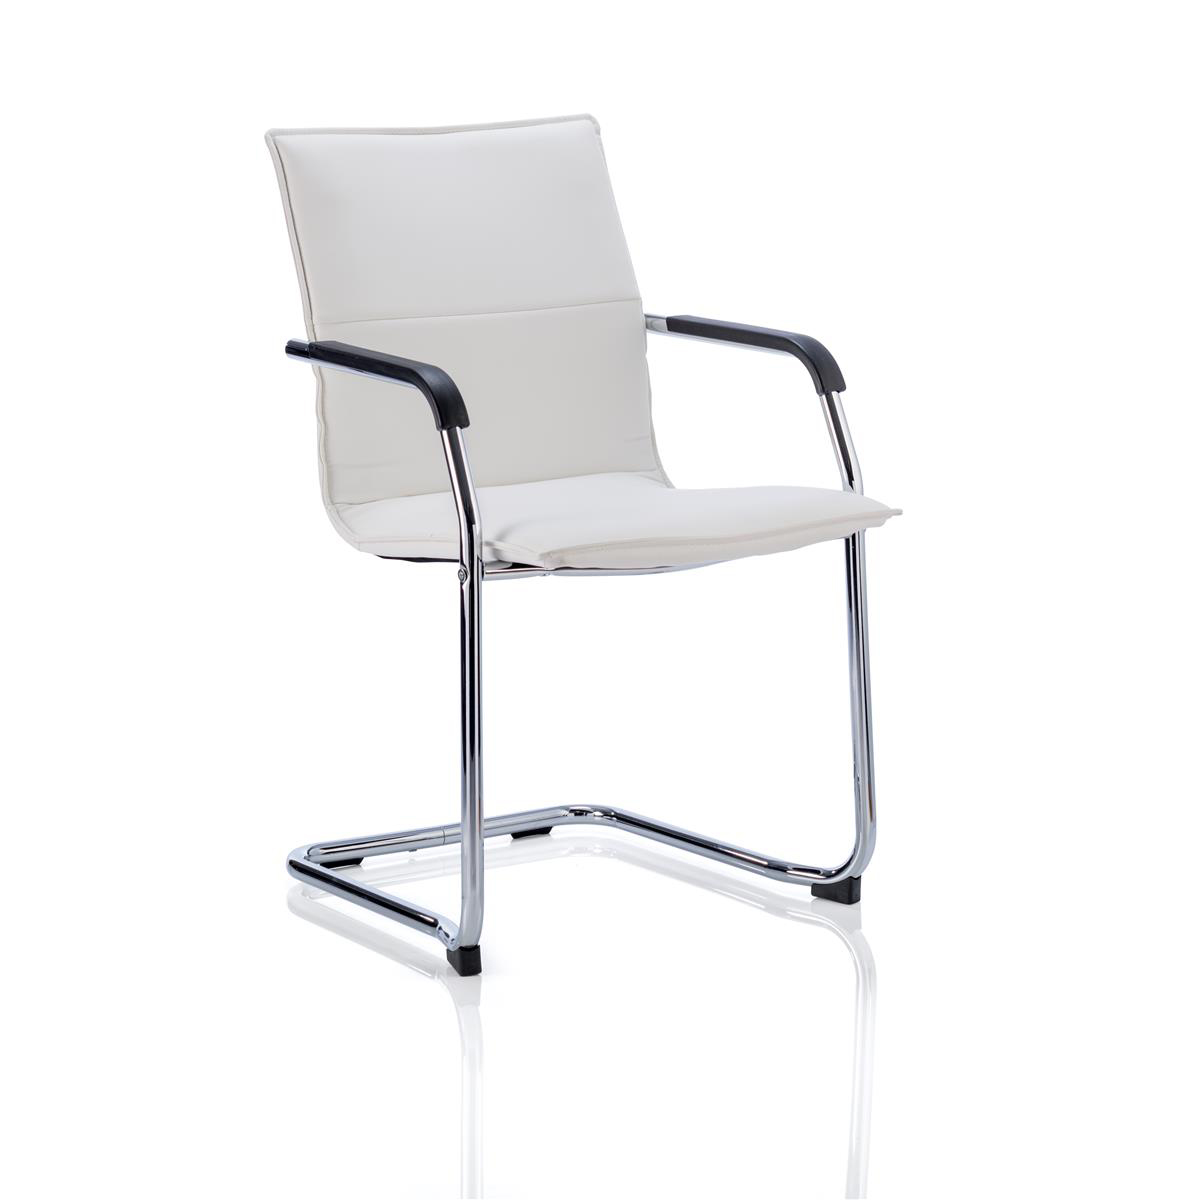 Sonix Echo White Leather Chair 490x460x480mm Ref BR000038